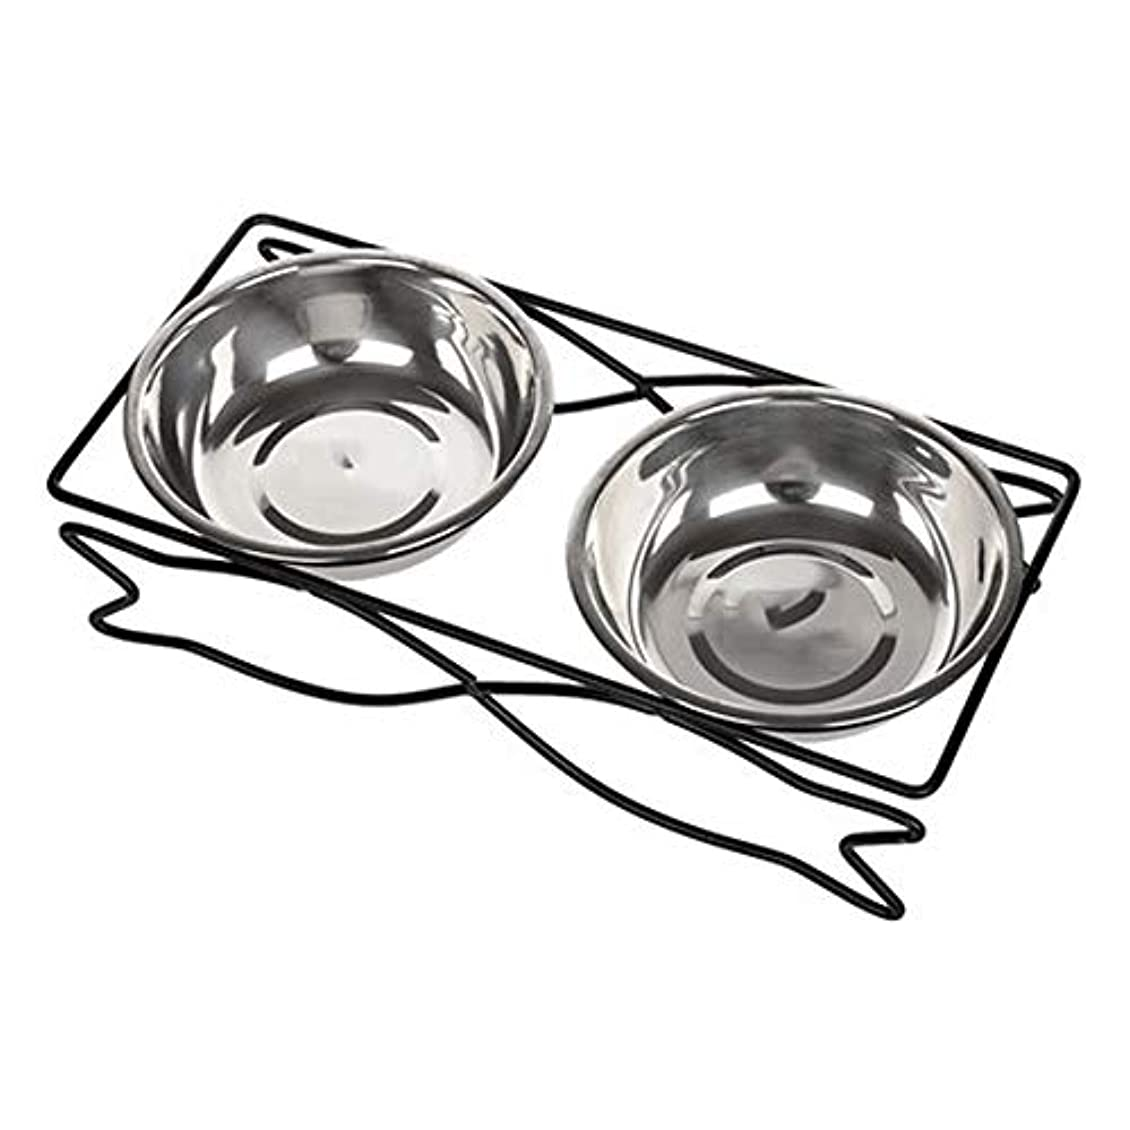 Stainless Steel Pet Bowl Non-slip Shatter-resistant Cleaning Convenient Double Bowl Removable And Washable Cleaning Large And Small Dogs Pet Supplies (色 : Stainless steel, サイズ さいず : M)